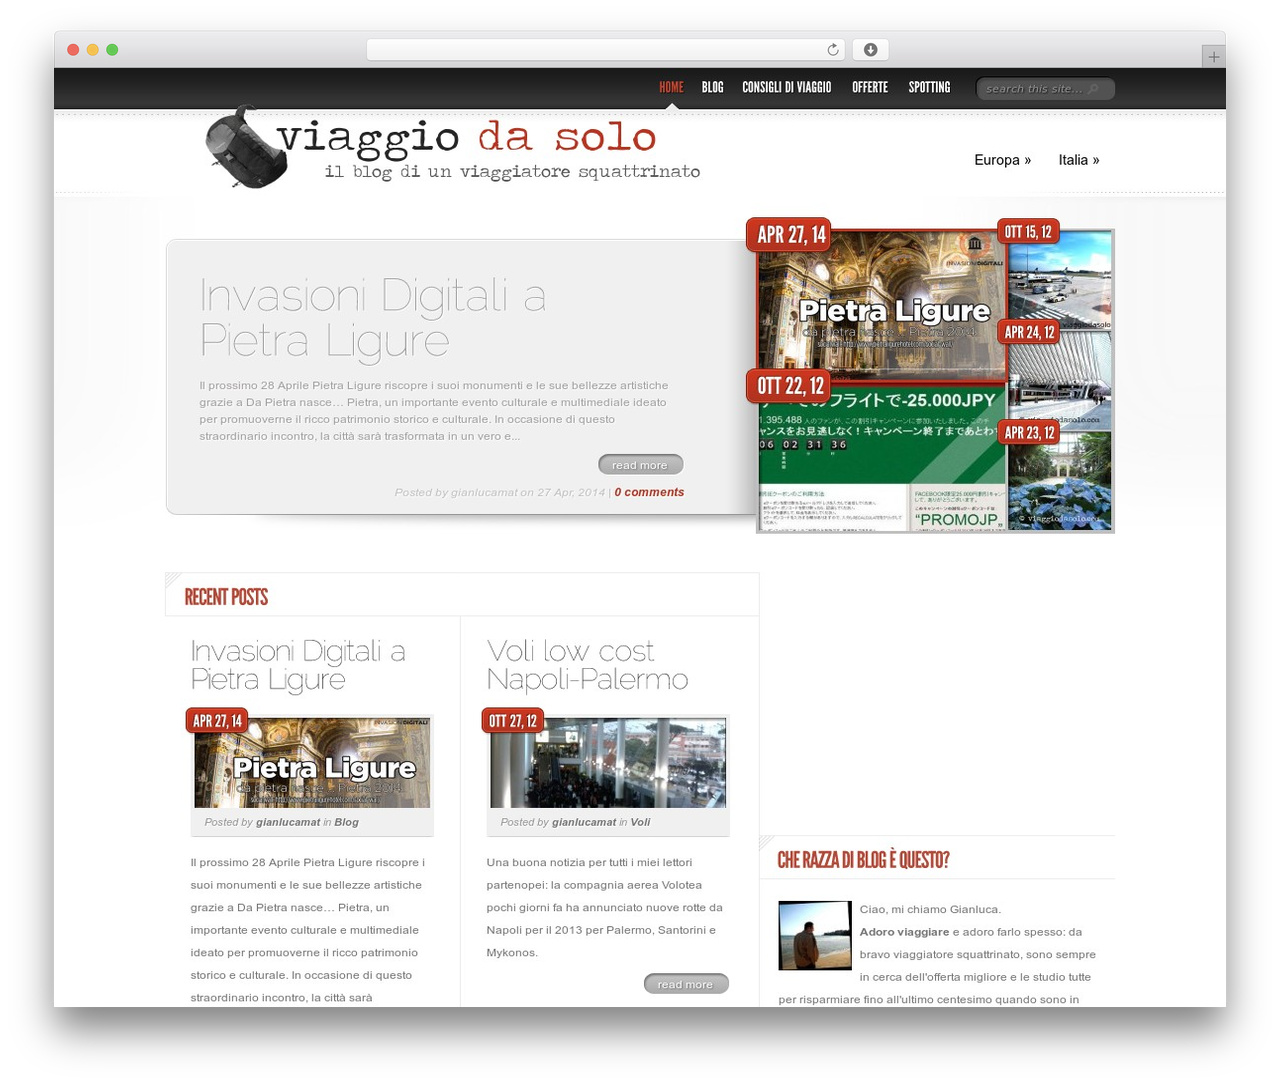 WordPress theme Delicate News - viaggiodasolo.com